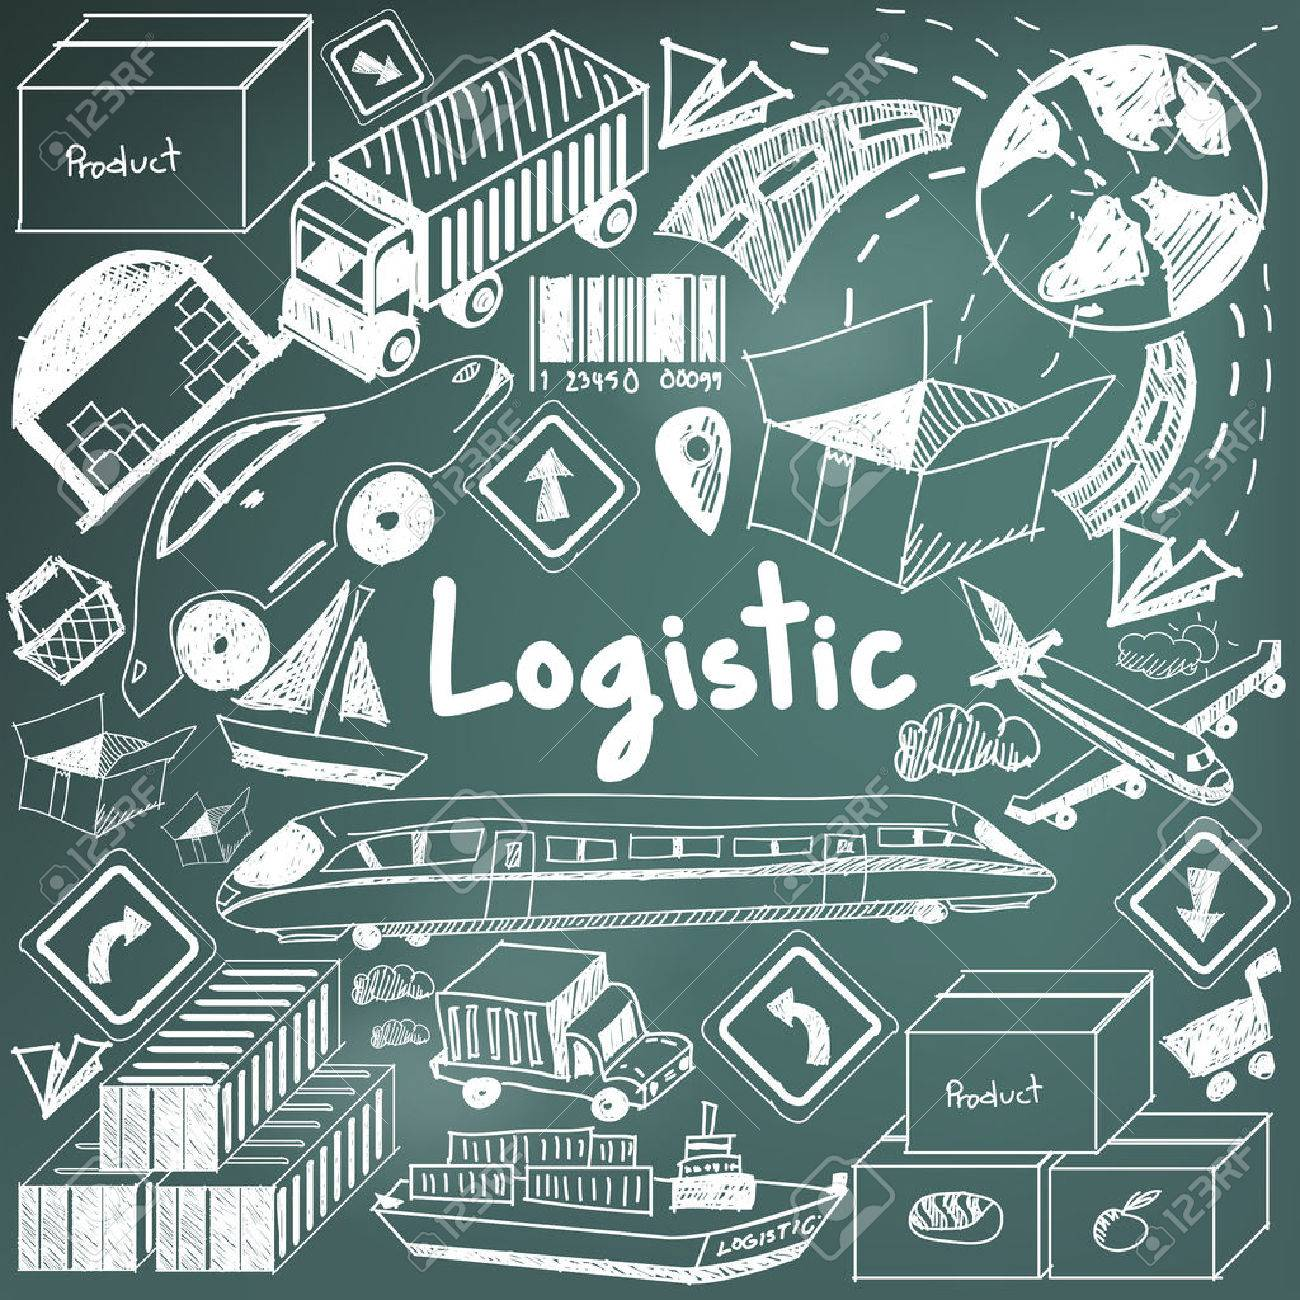 Logistic, transportation, and inventory management chalk handwriting doodle icon cargo object sign and symbol in blackboard background used for business presentation title or university education with header text, create by vector Stock Vector - 52658941